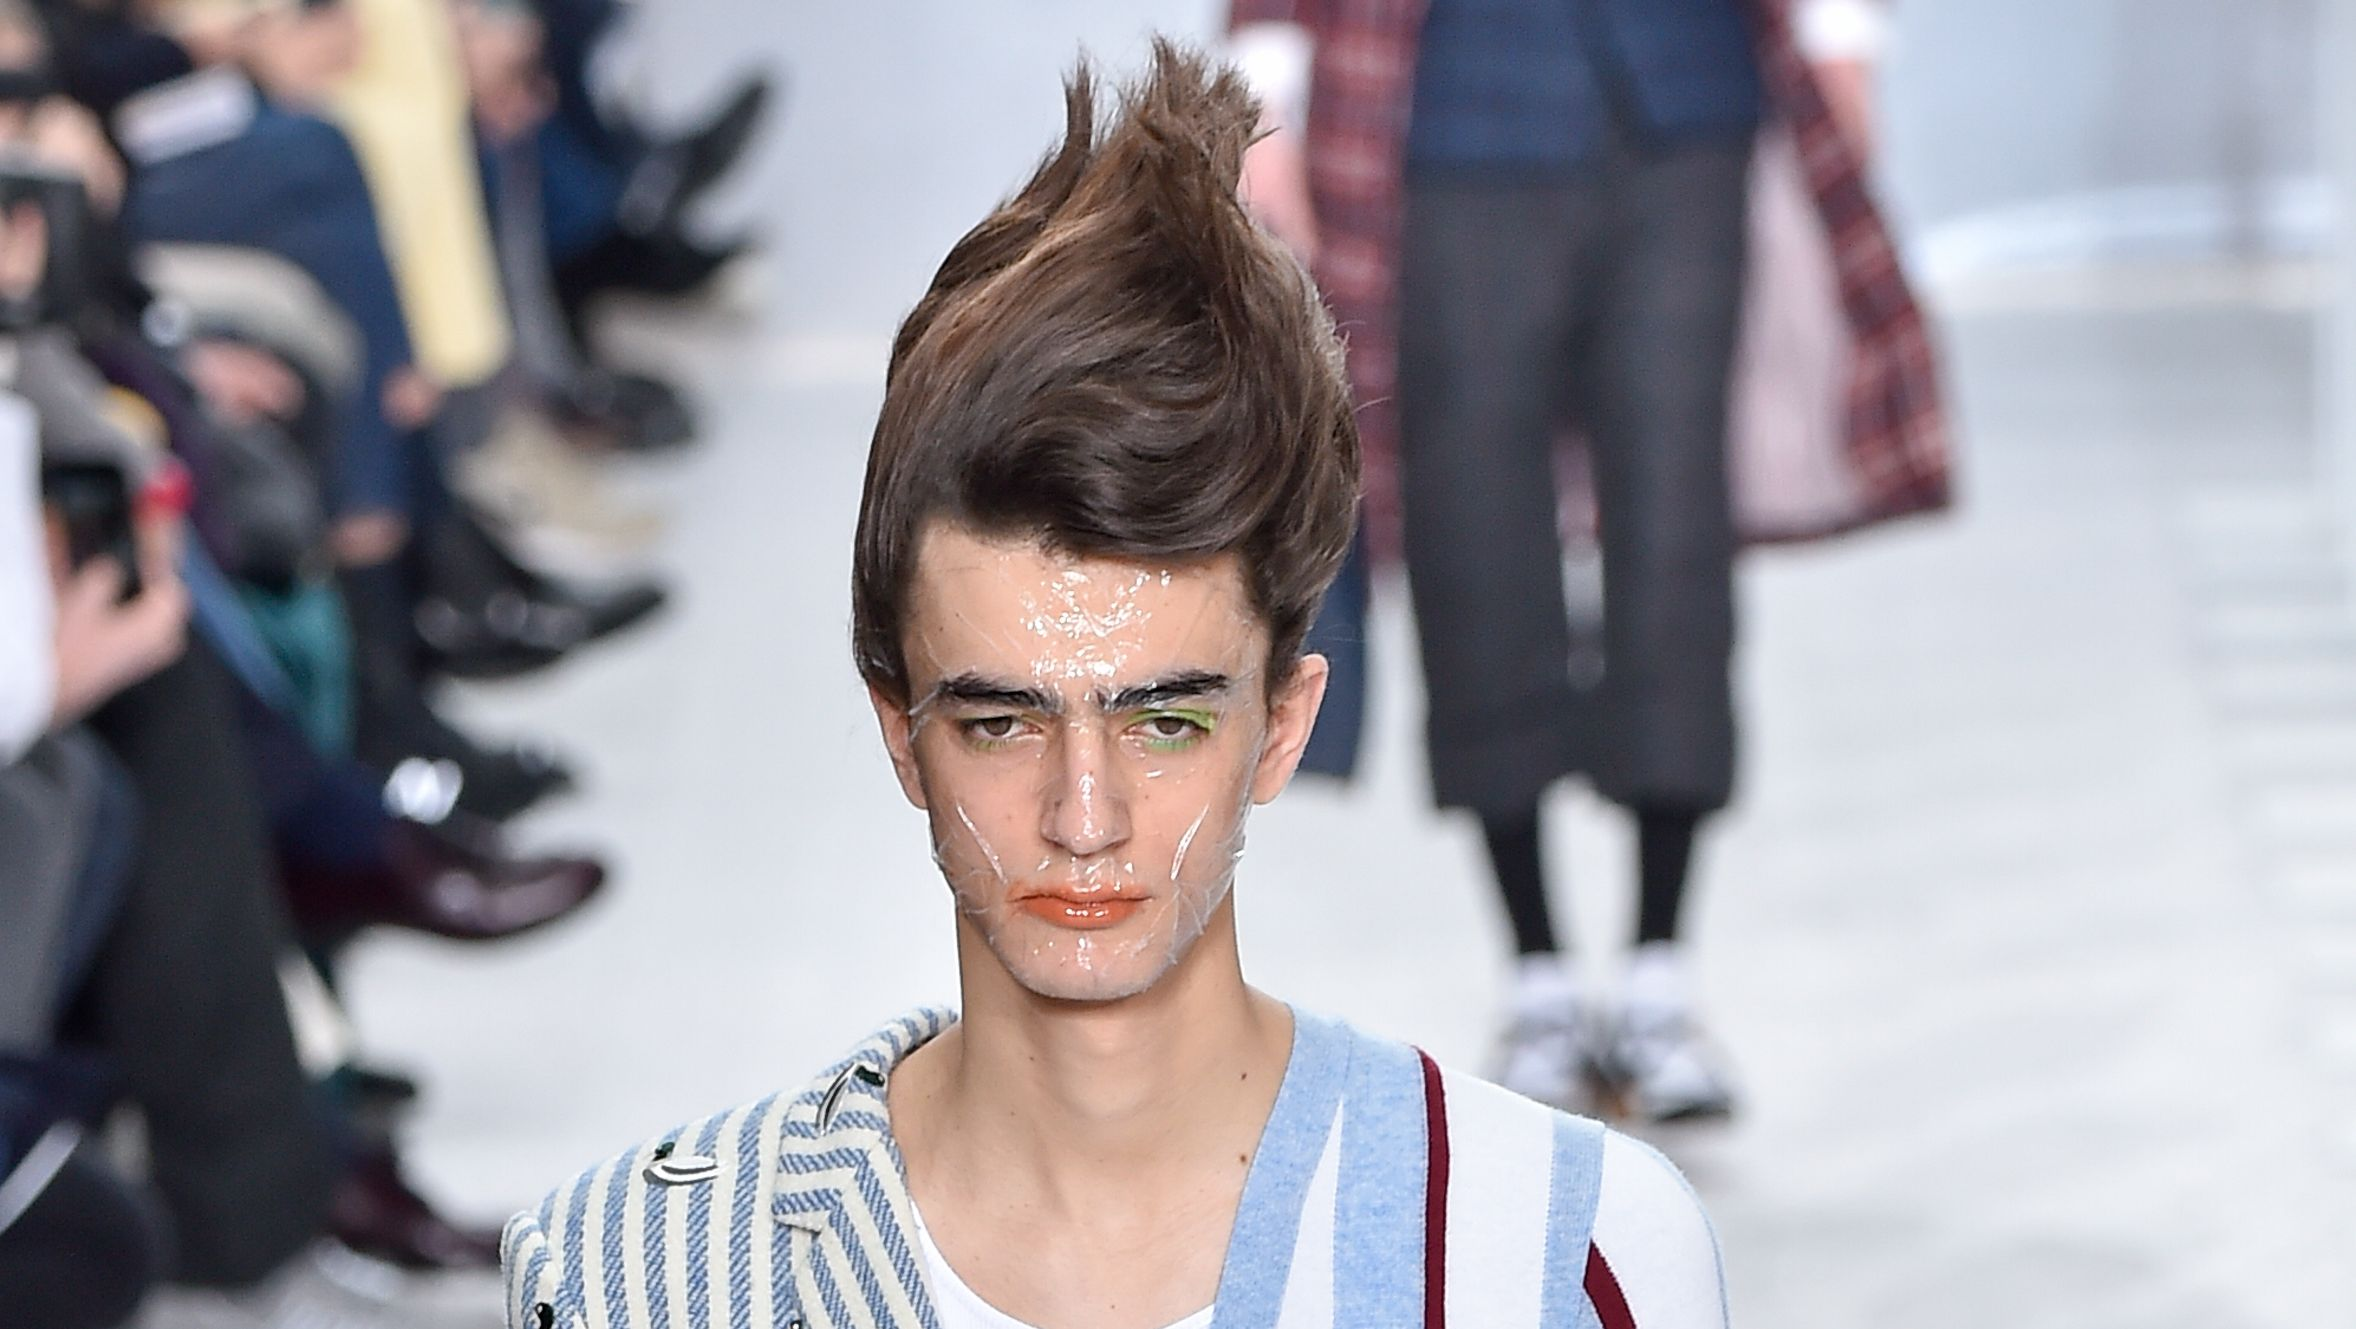 Introducing 2019's Must-Have Haircut: The Fashion Troll